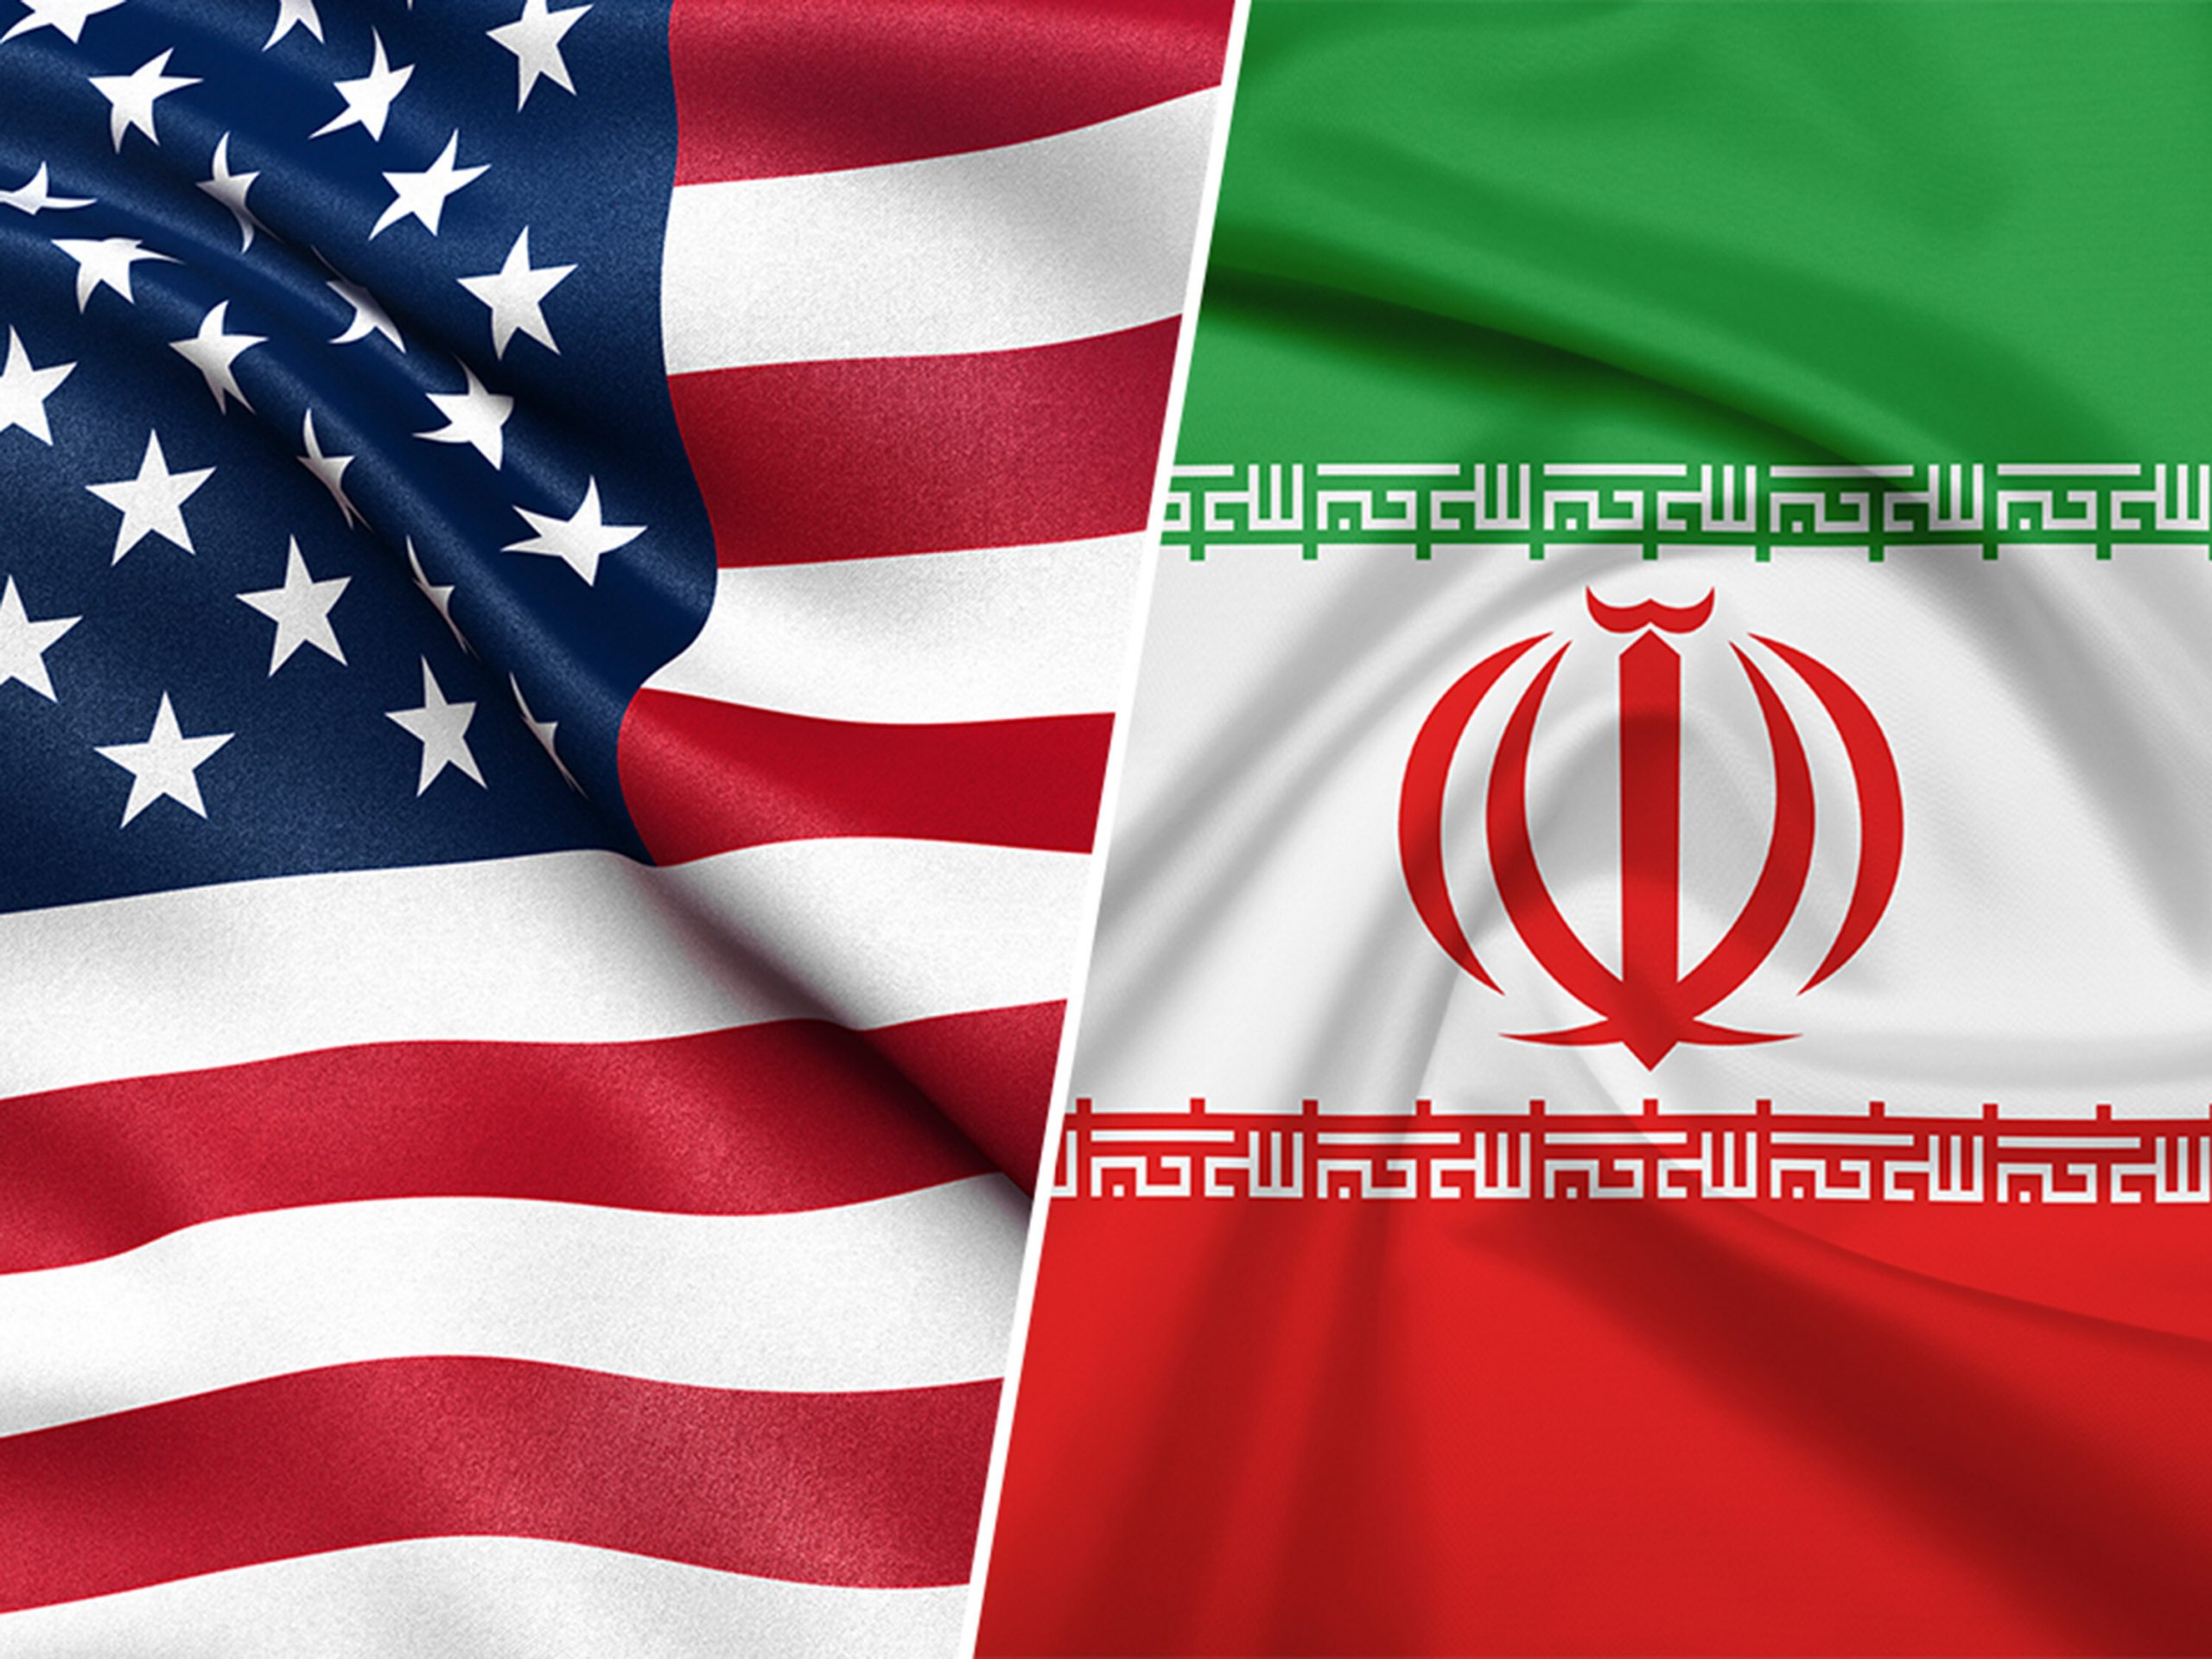 <i>Shutterstock</i><br/>The United States government has seized dozens of US website domains connected to Iran